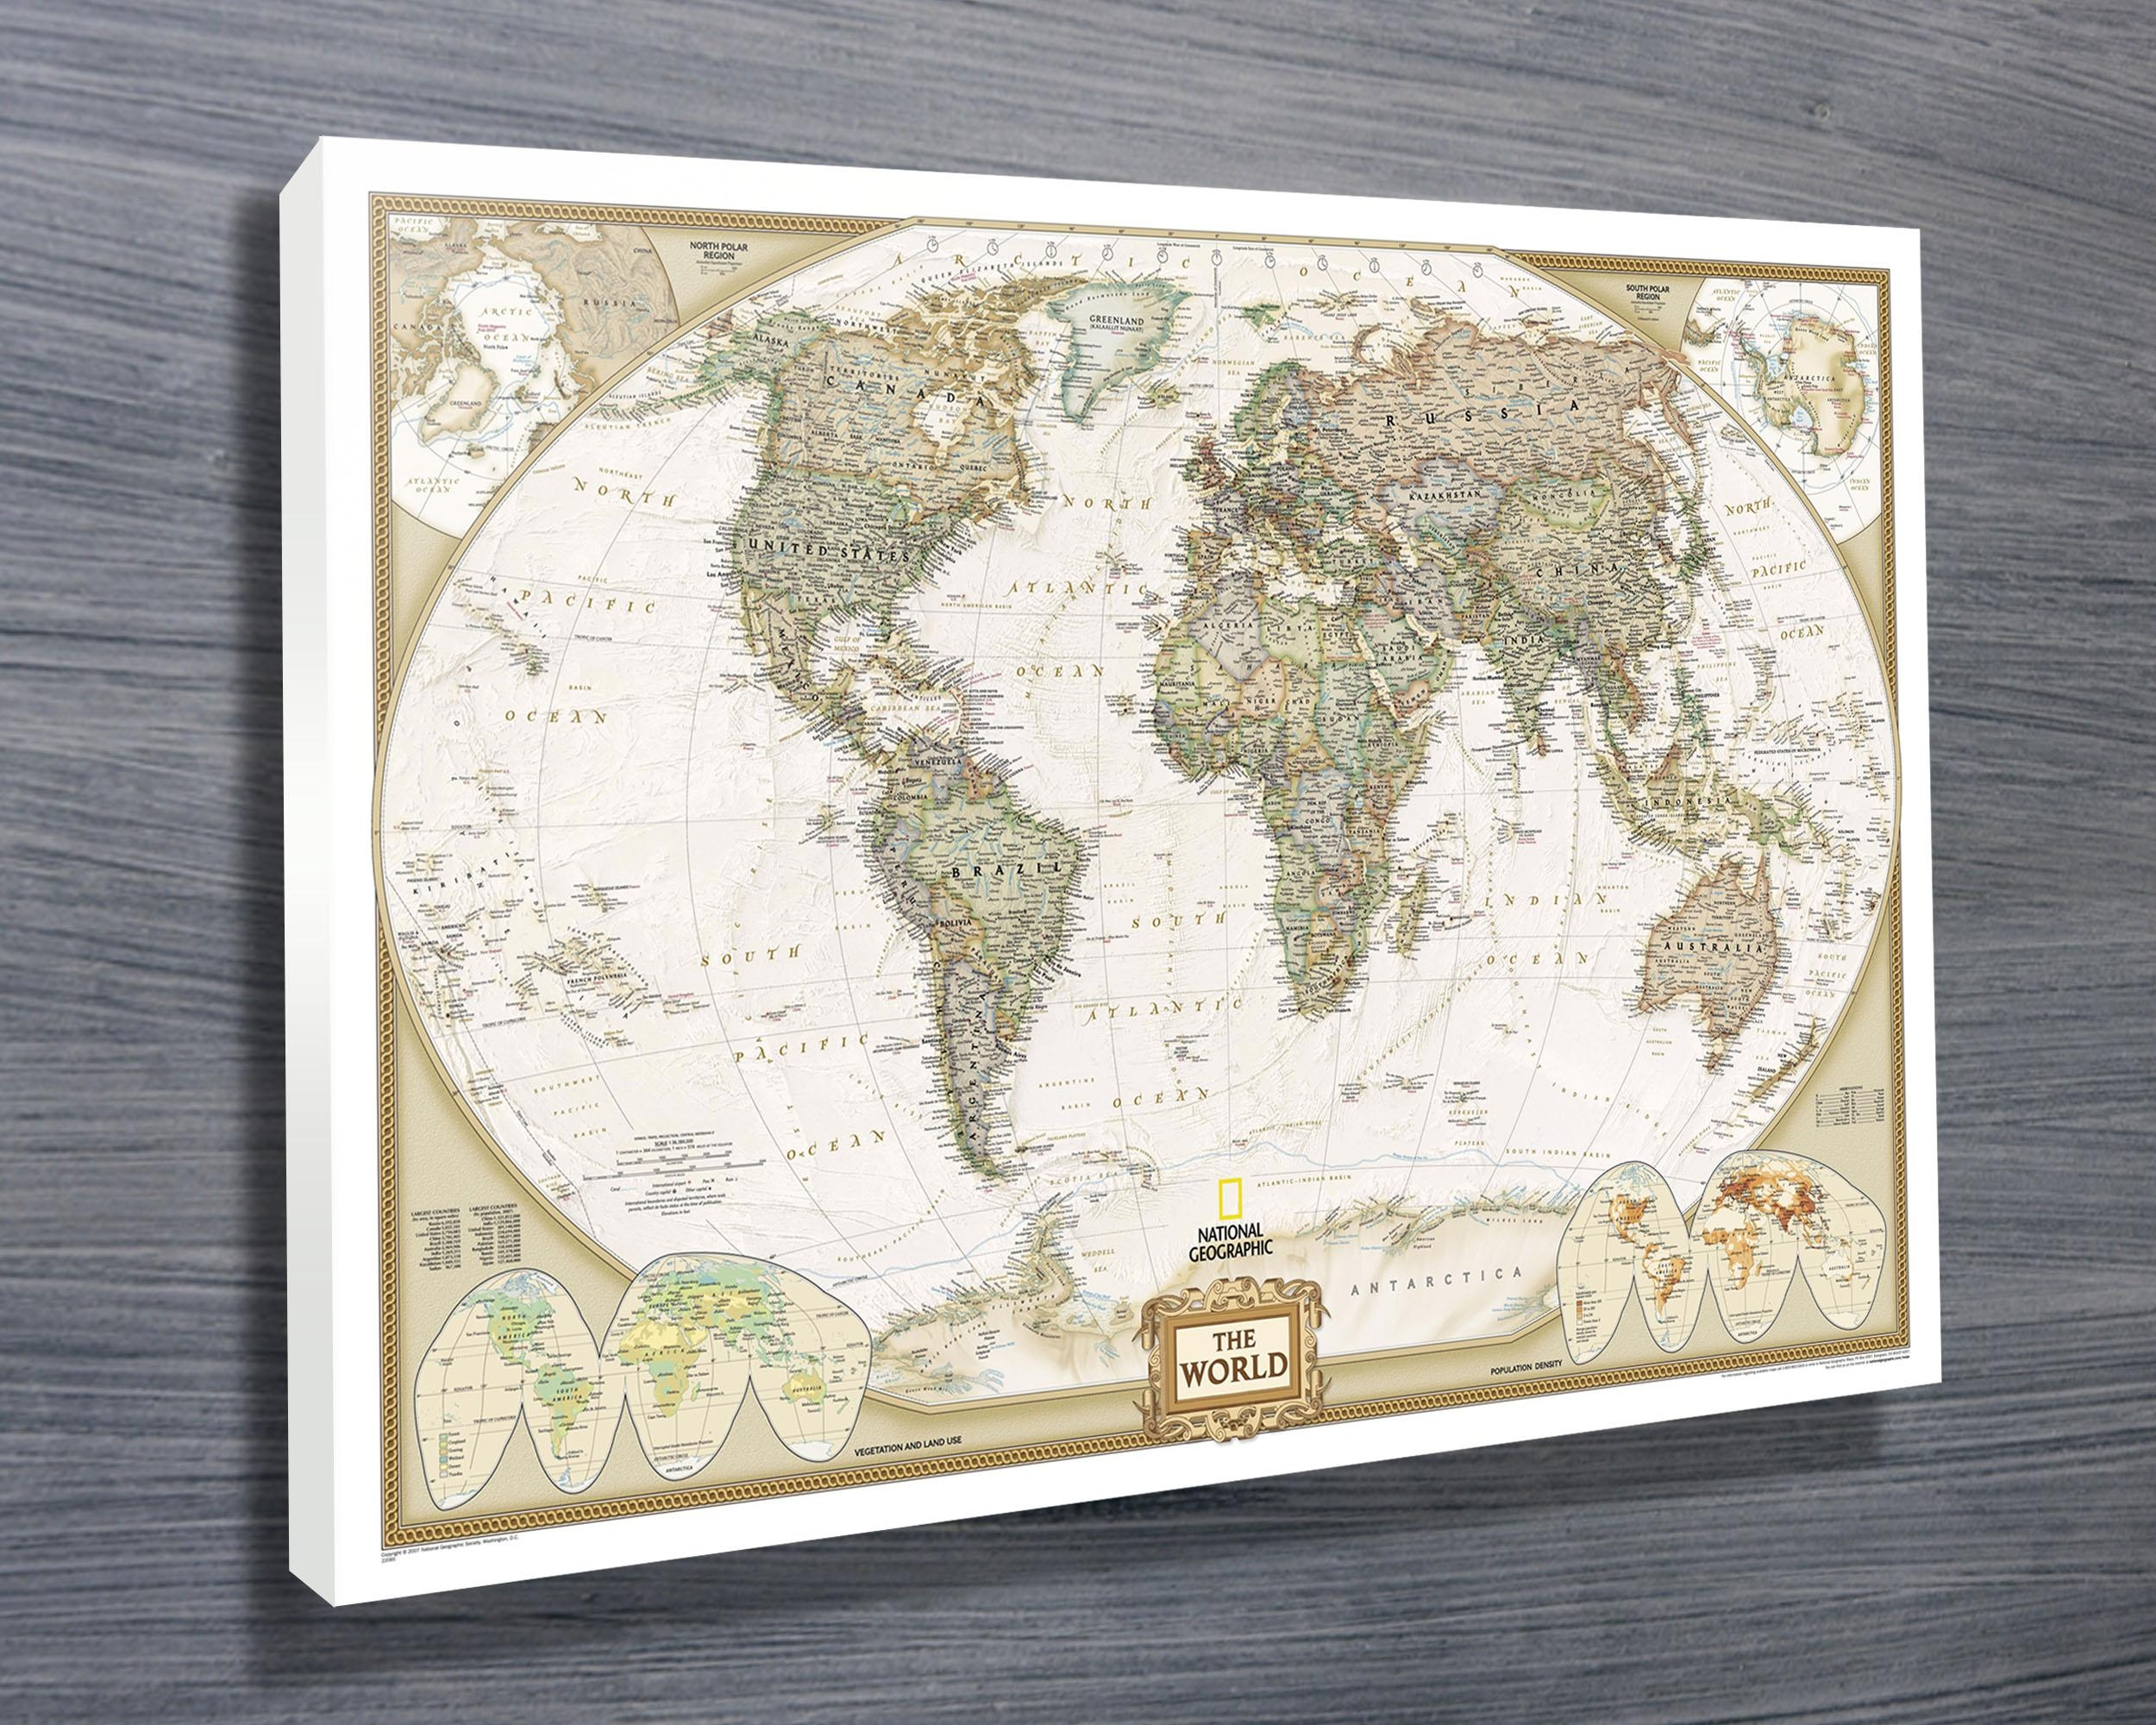 World map wall art framed page 24 original world map painting 20 best framed world map wall art wall art ideas gumiabroncs Choice Image